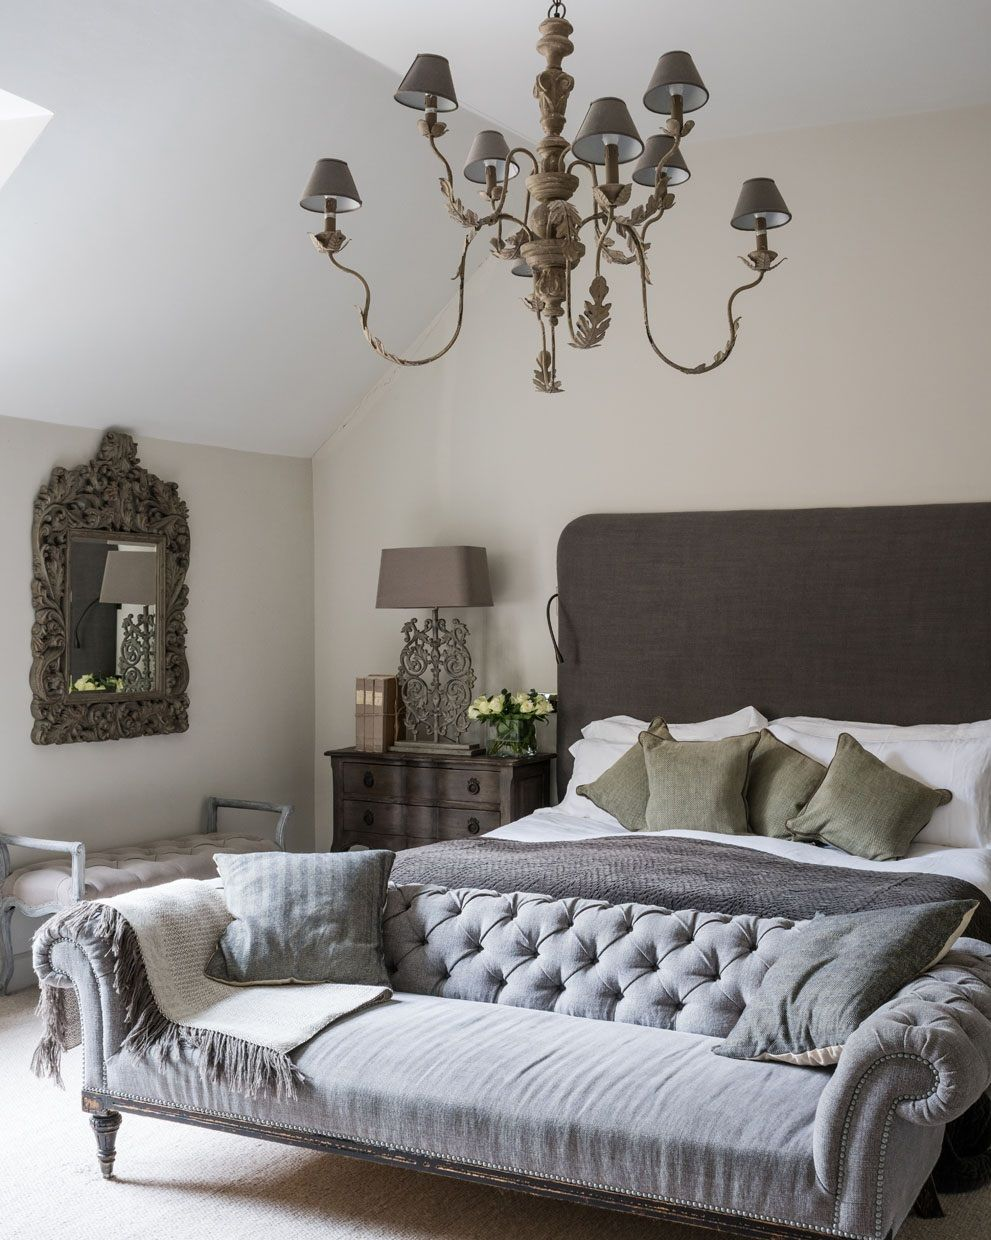 This Luxury Bedroom Sees An Upholstered Headboard Chez Lounge And